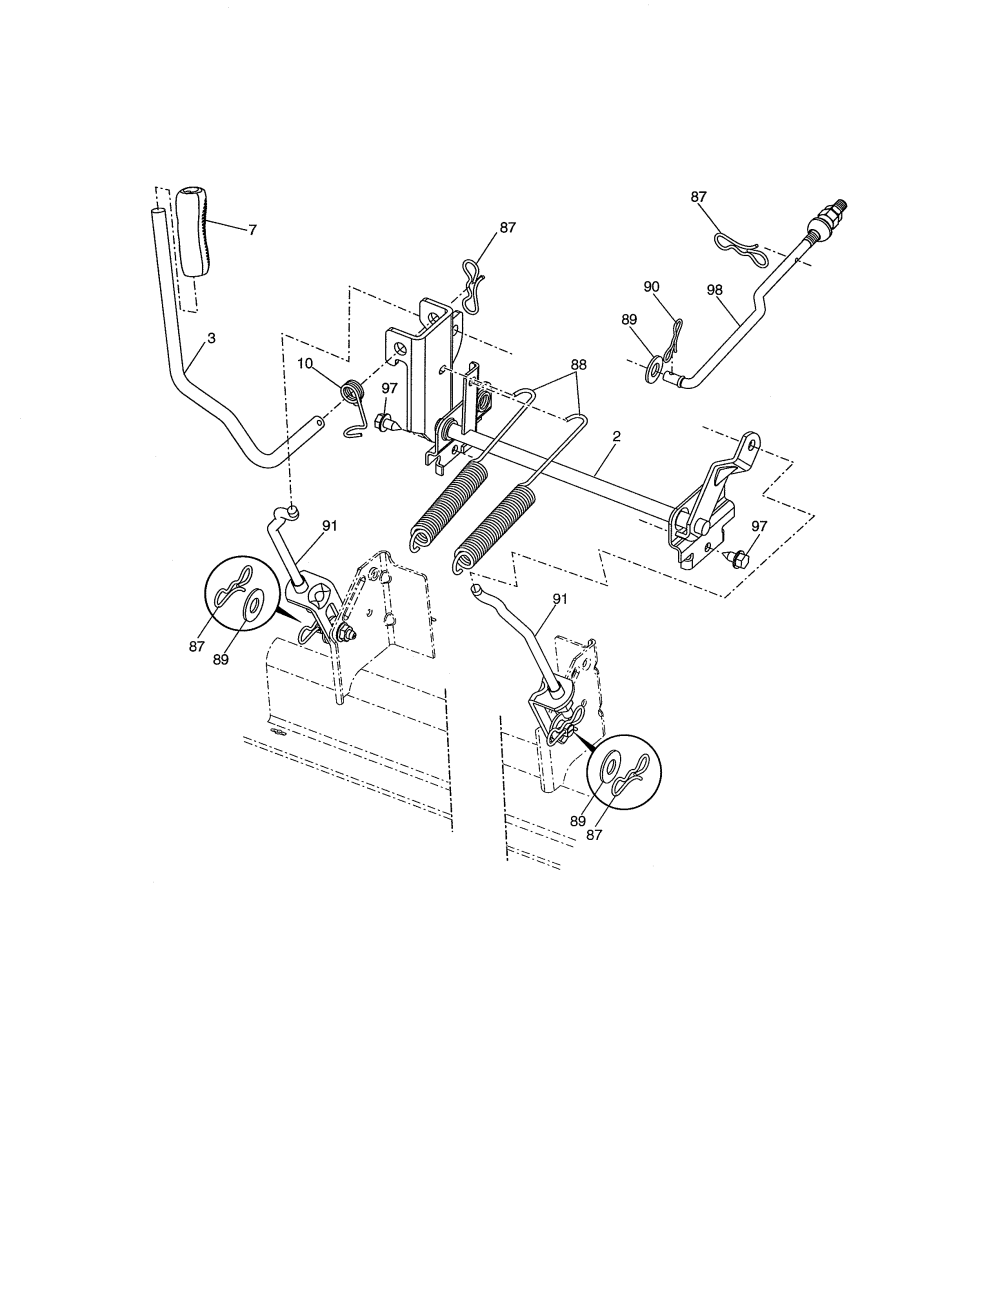 medium resolution of looking for craftsman model 917288611 front engine lawn tractor craftsman steering diagram craftsman 917288611 lift assembly